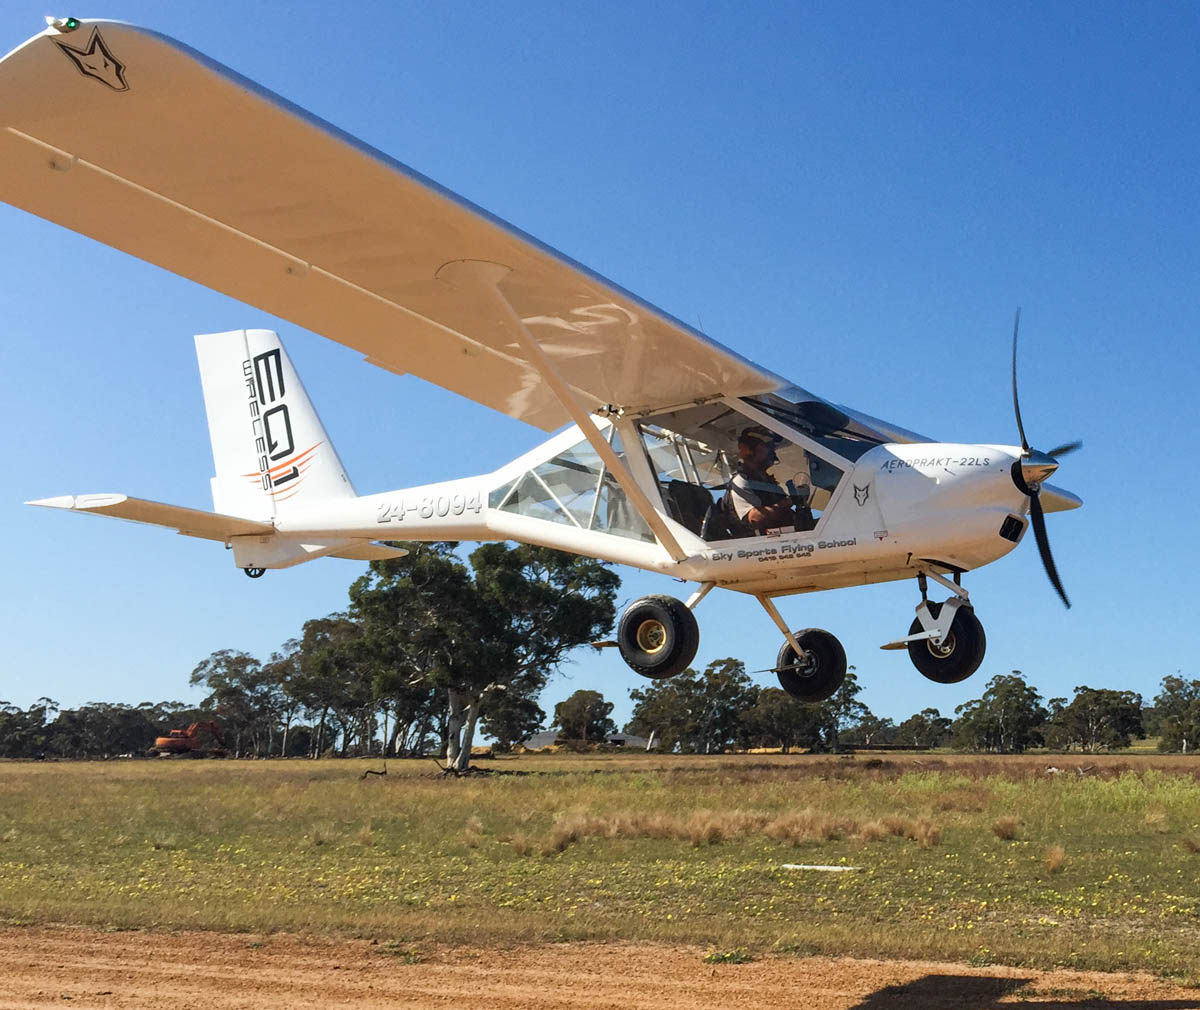 24-8094 Aeroprakt A22LS Foxbat (MSN A22LS-118_ owned by Sky Sports Flying School, at White Gum Farm Airfield (YWGM) - 18 September 2015 The Aeroprakt A-22 Foxbat is a Ukrainian two-seat, high-wing, tricycle gear ultralight aircraft that was designed by Yuri Yakovlev and is manufactured by Aeroprakt. Photo © Andrew Cotterall